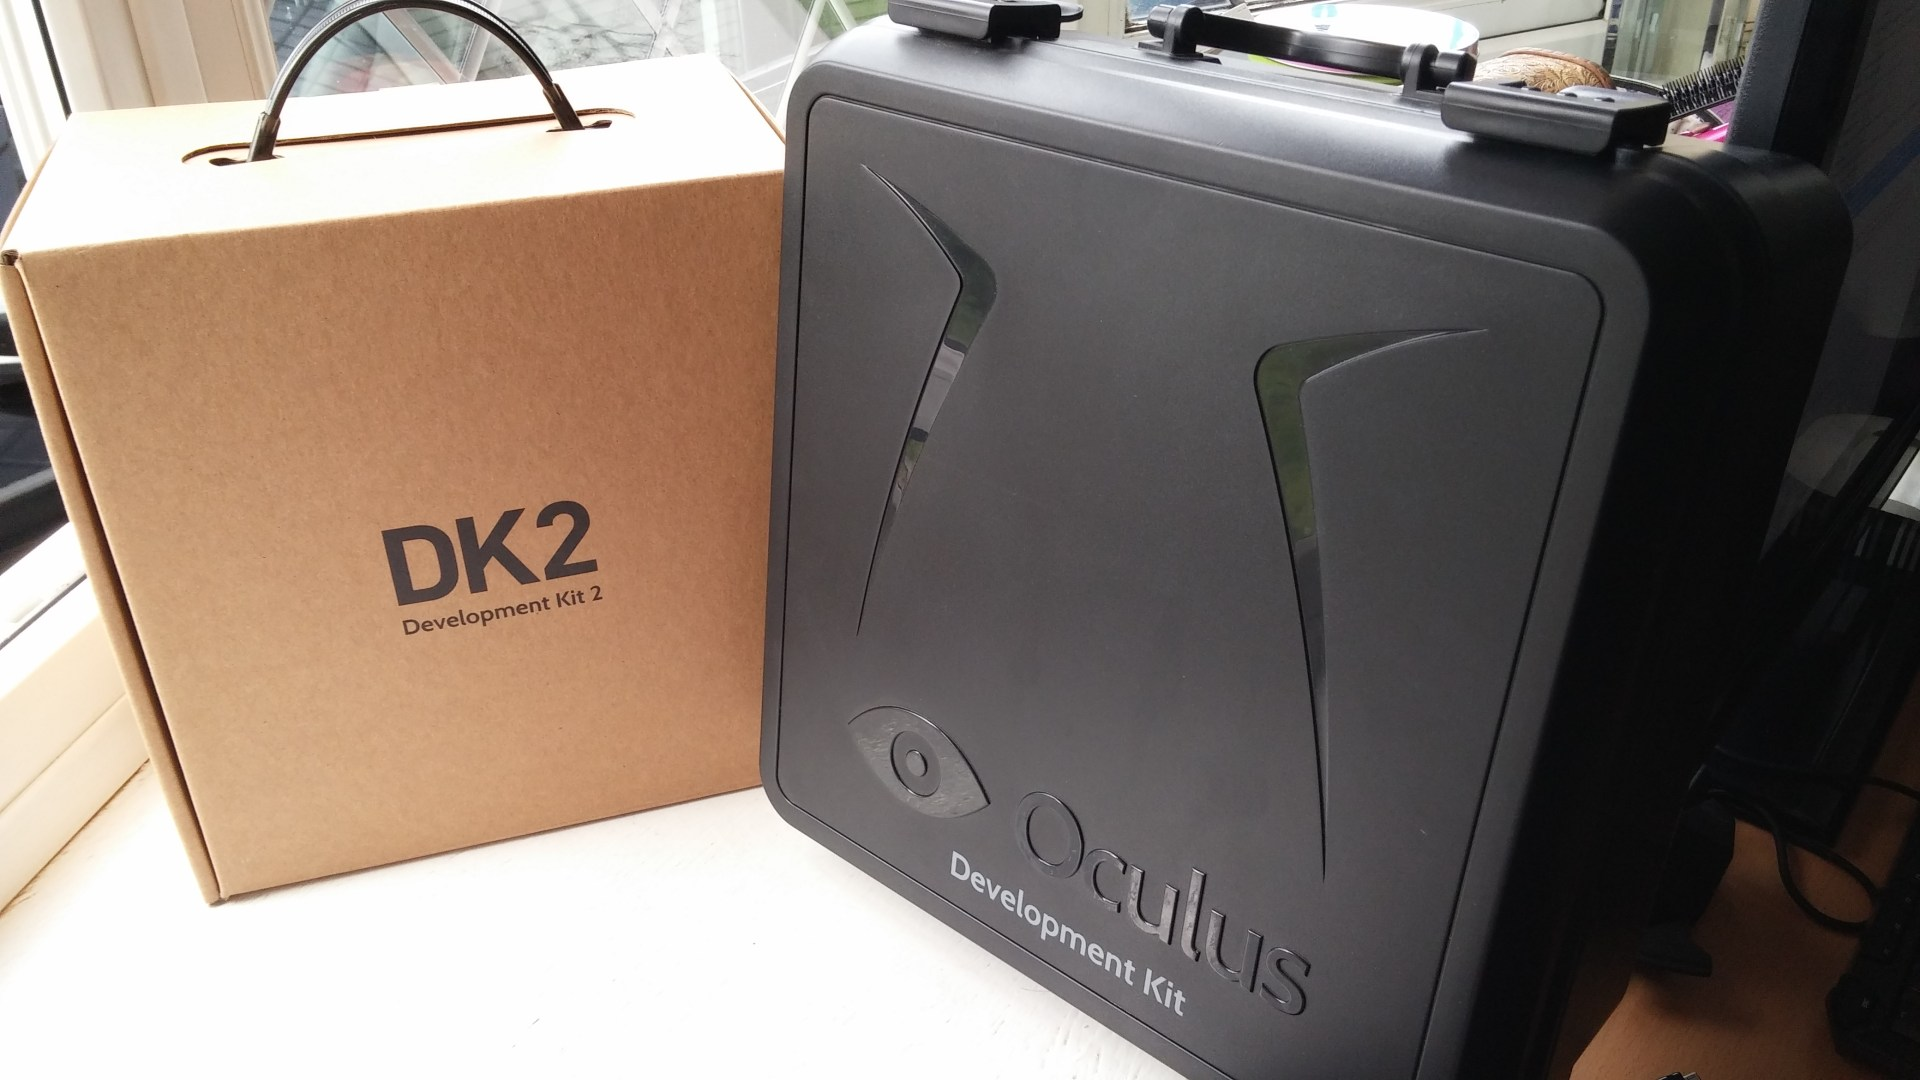 Back to the Future: Oculus Rift will ship in a hard-shell plastic case similar to the one used for DK1.